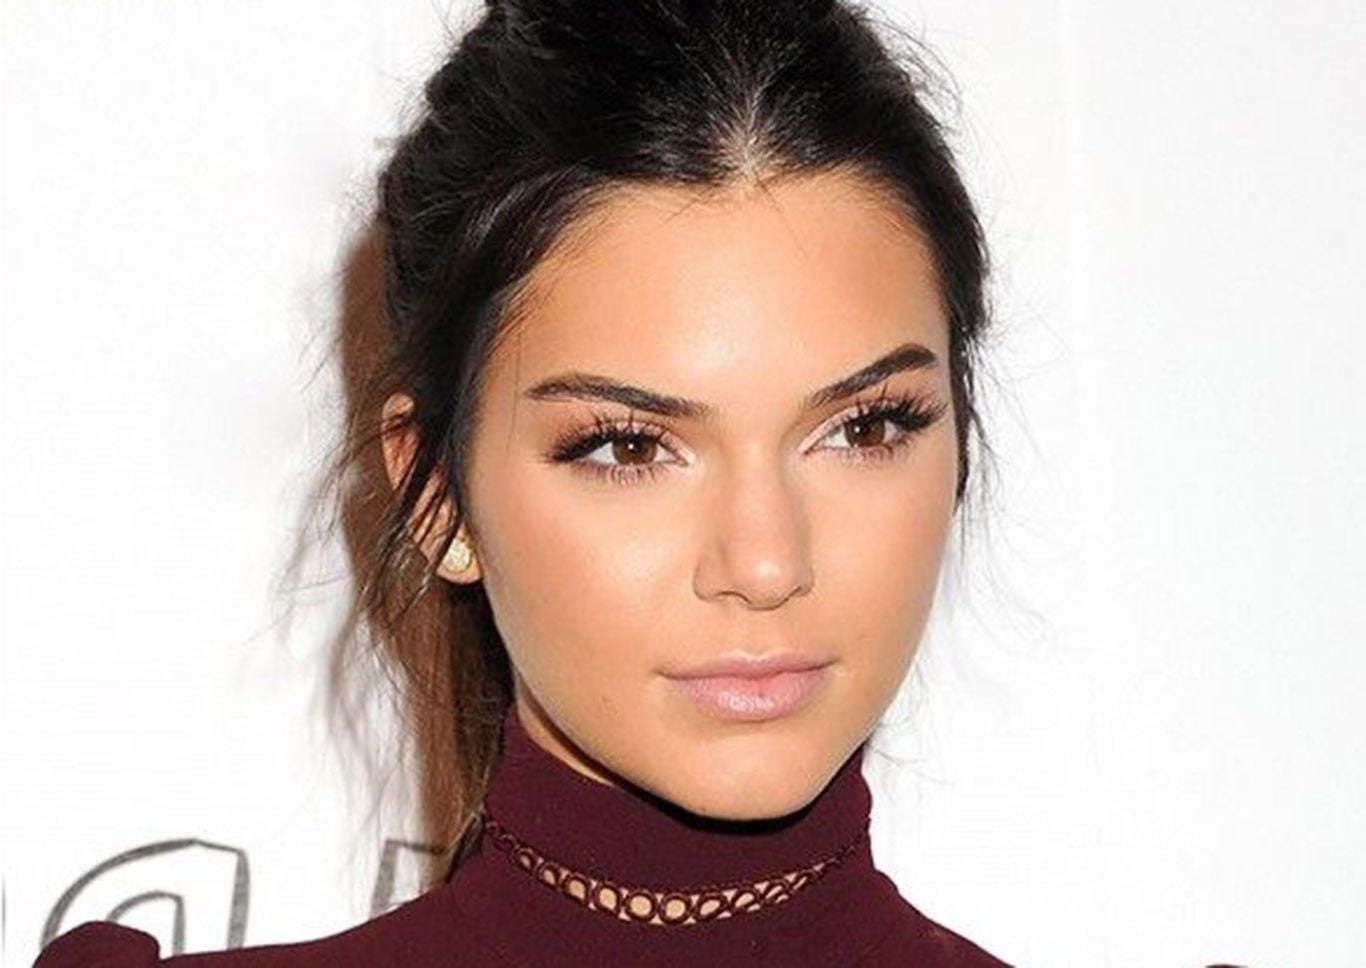 Hd Wallpapers Of Girls And Cars 25 Kendall Jenner Wallpapers Hd High Quality